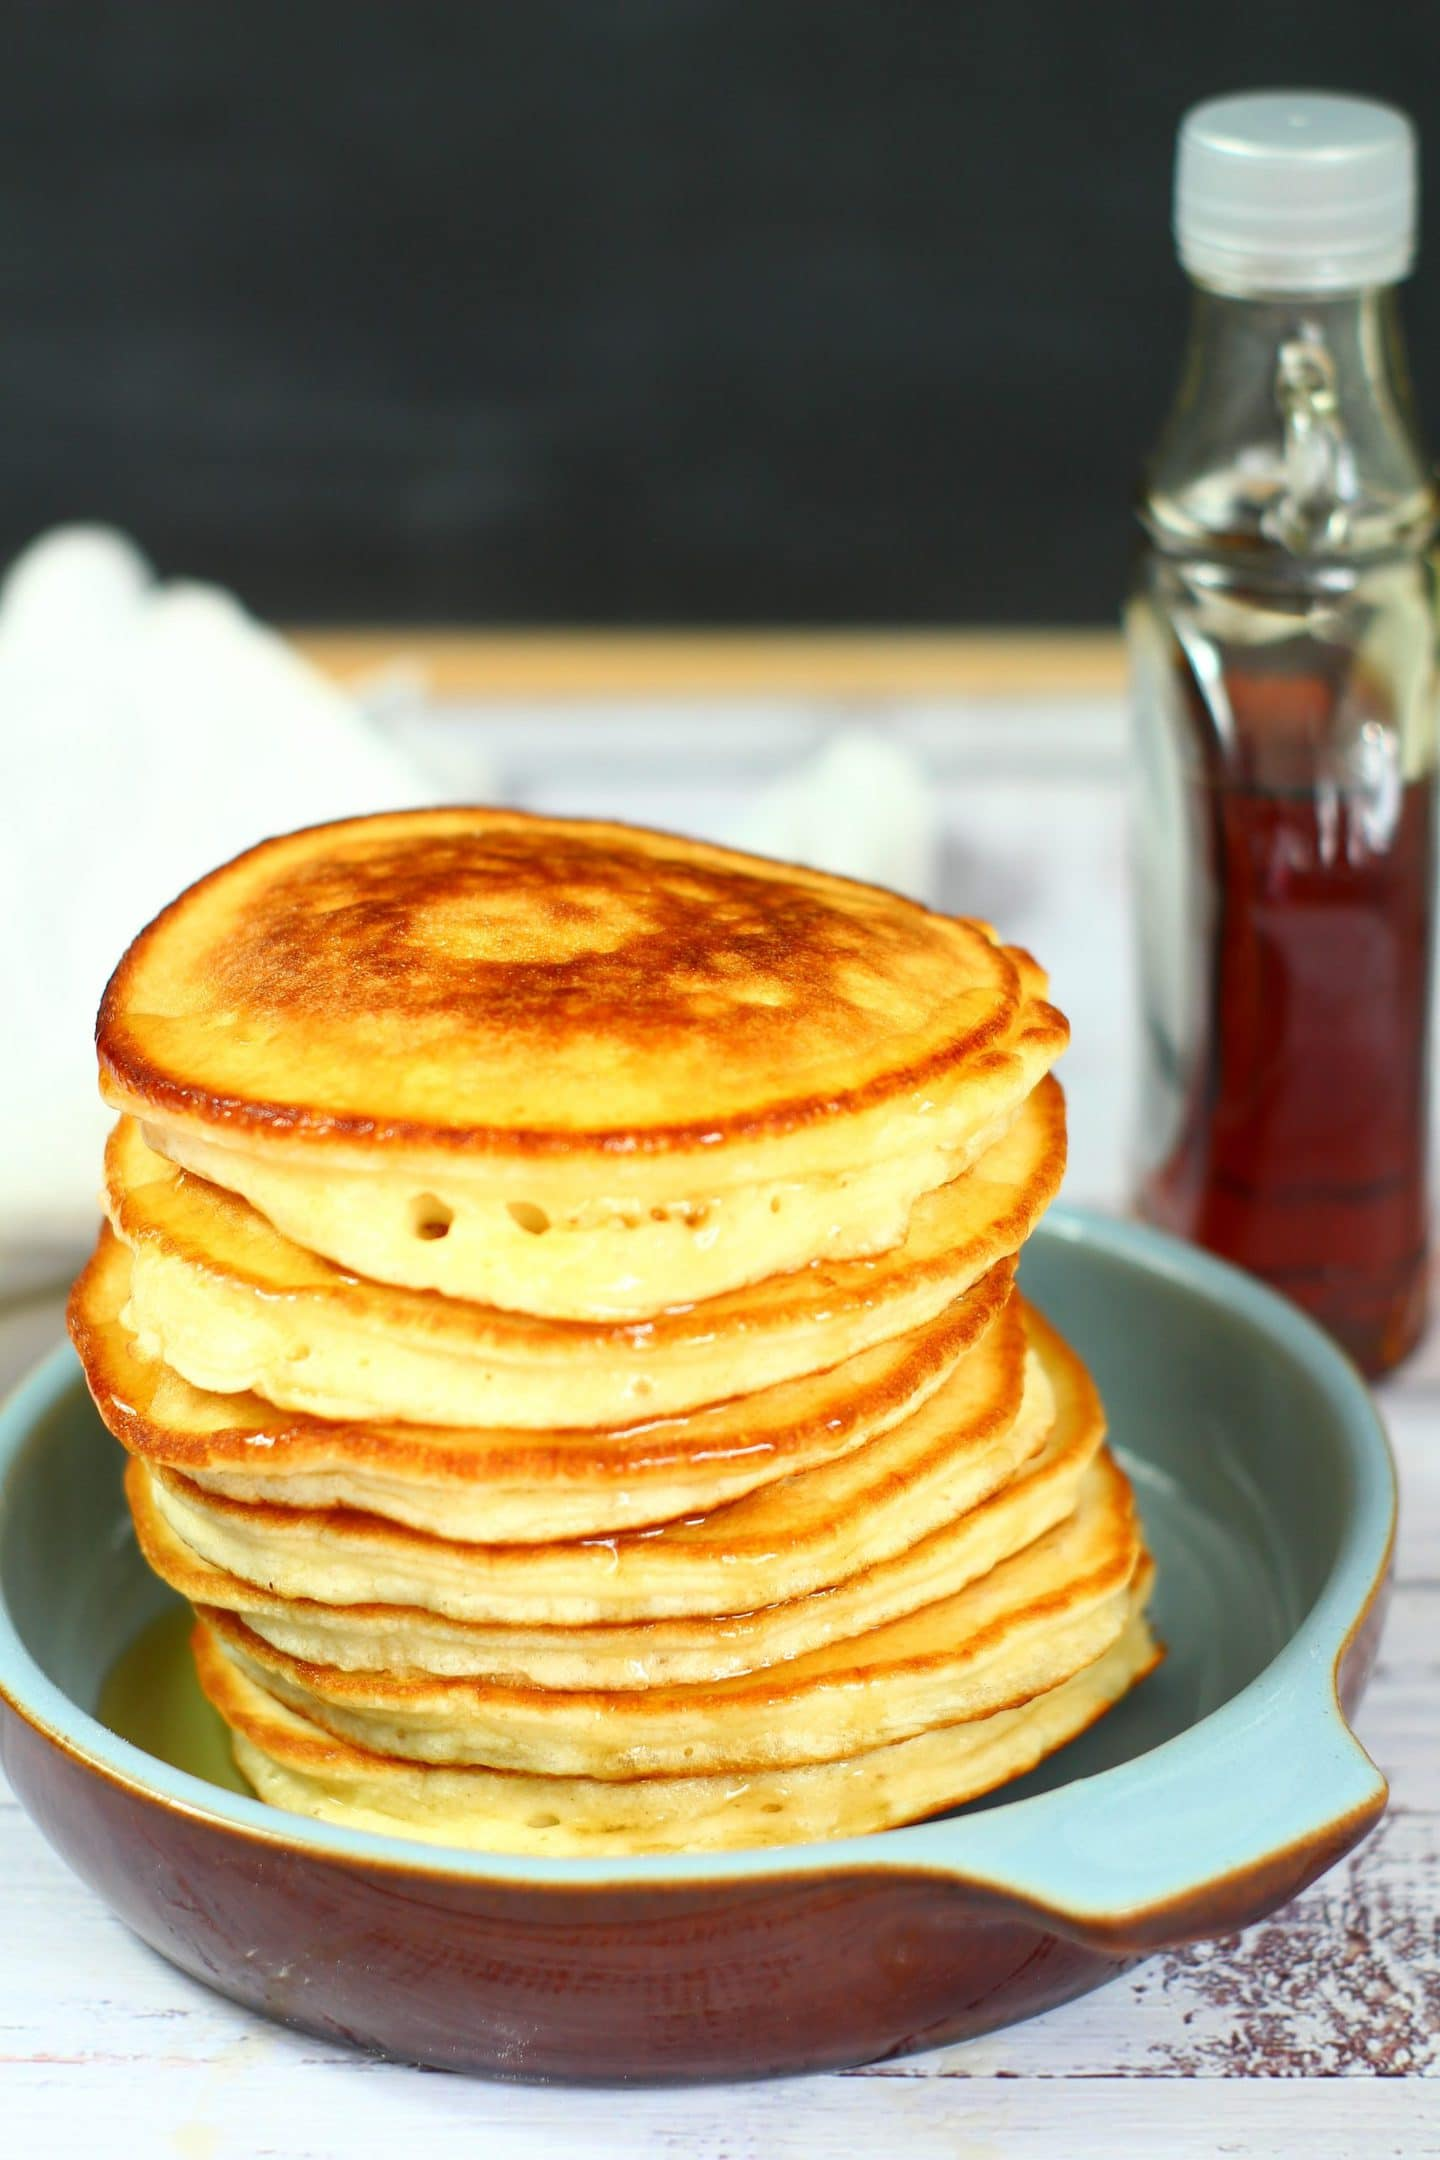 stacked pancakes in a dish with maple syrup in the background.